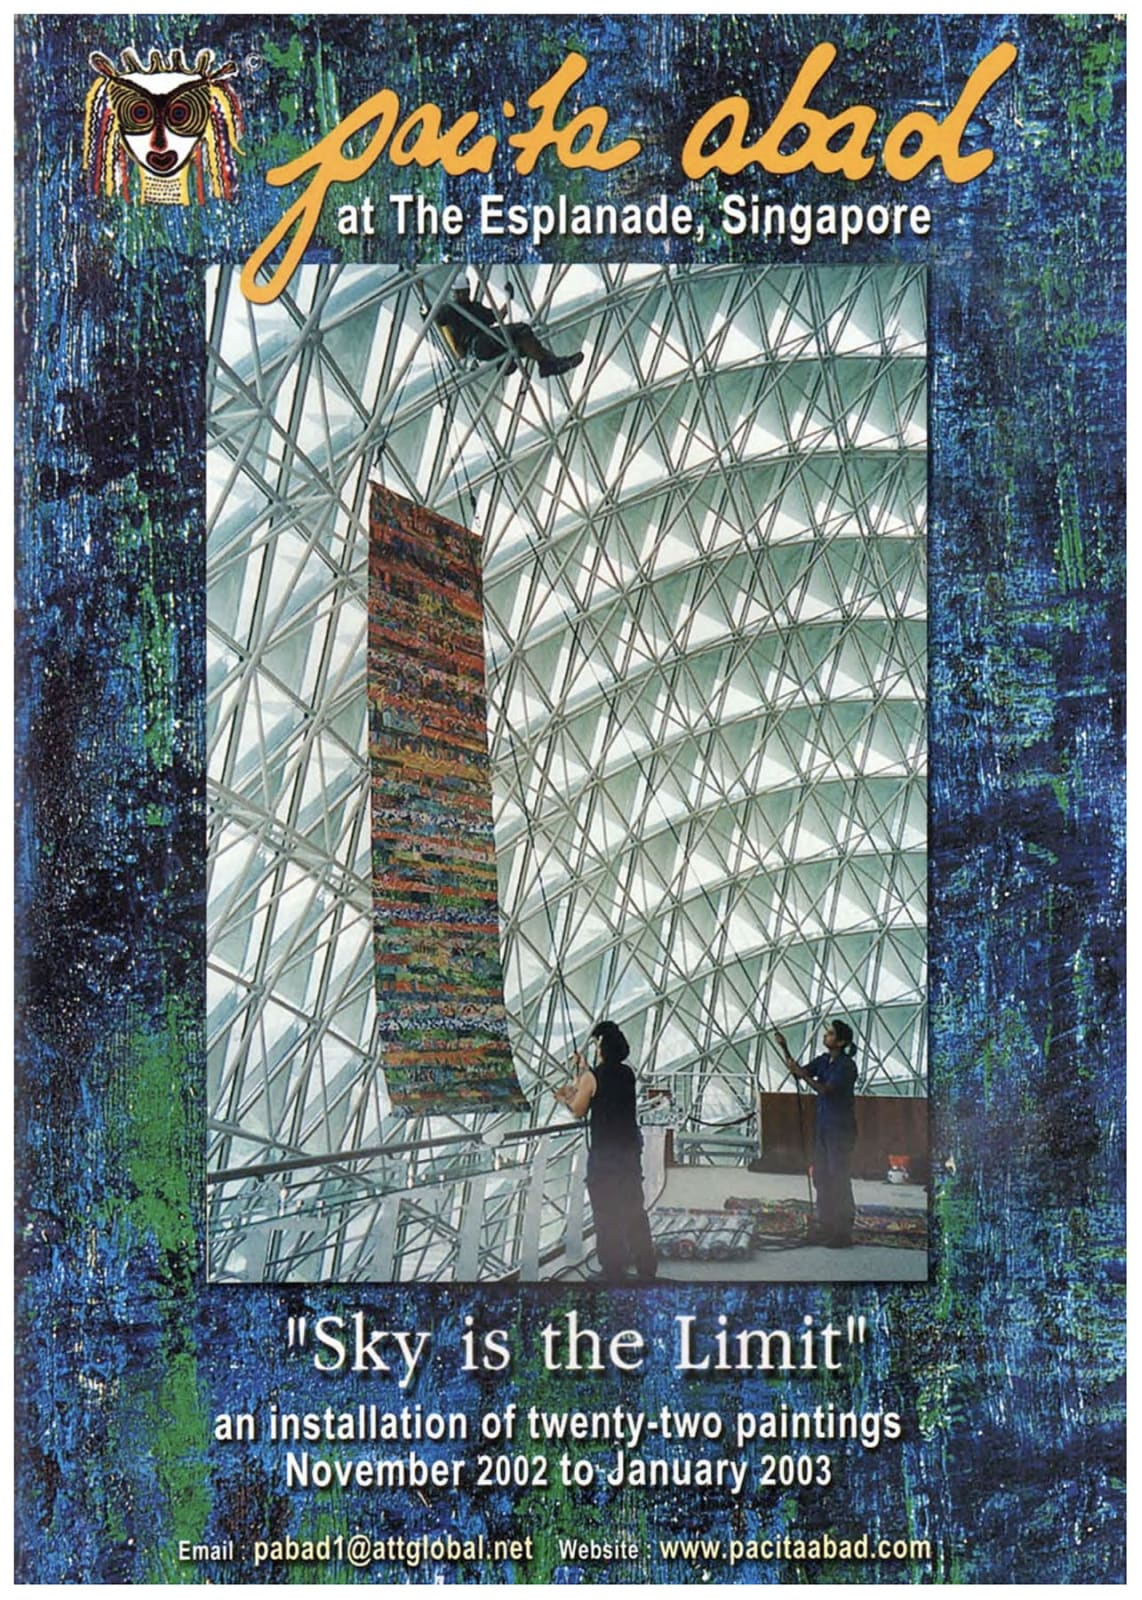 Pacita Abad: The Sky is the Limit